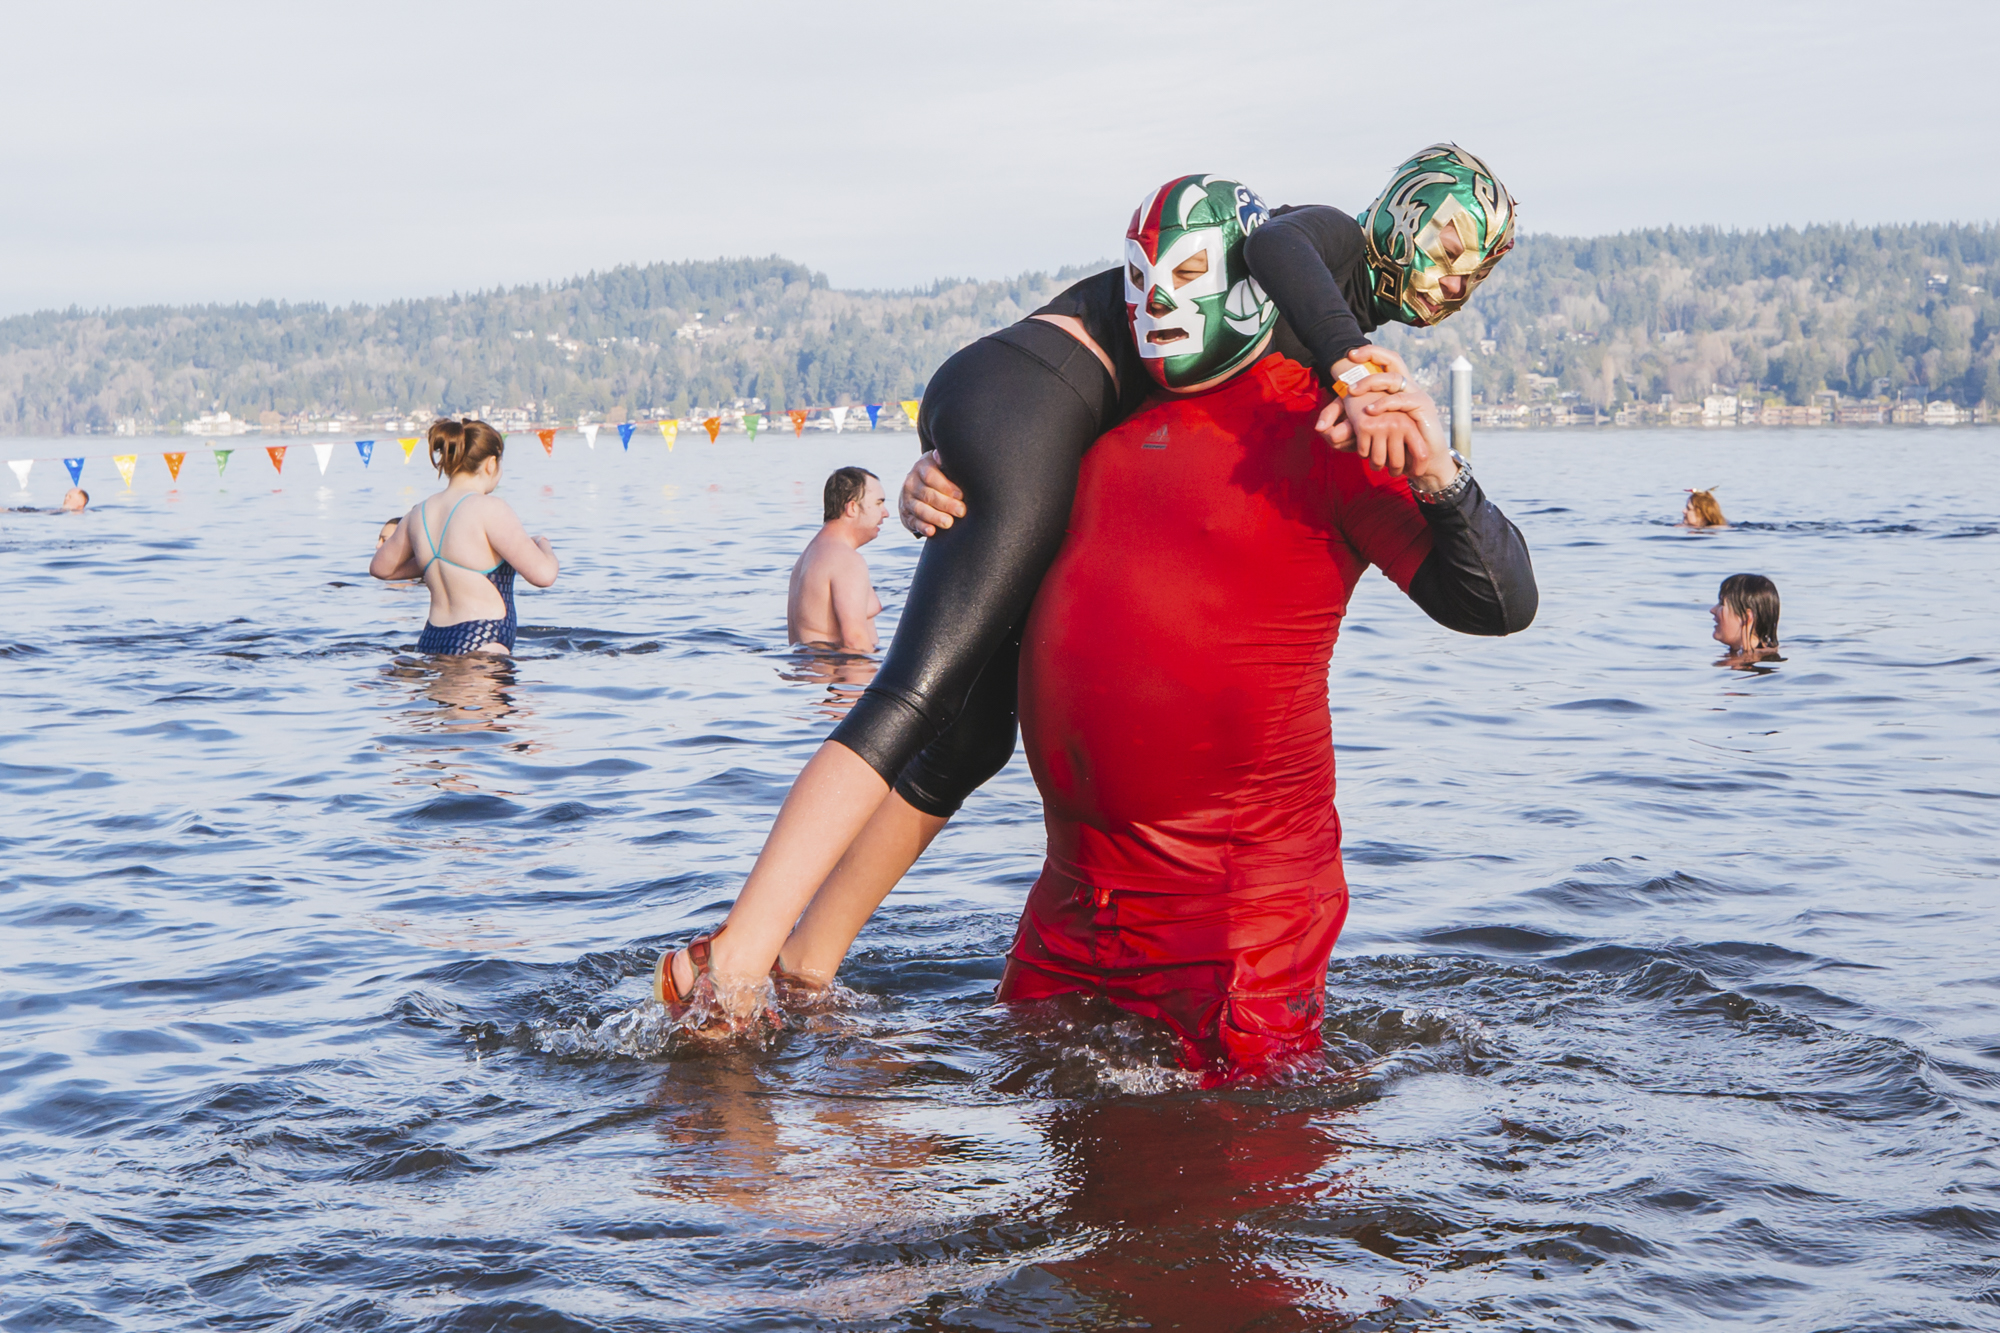 Happy New Year! How are you spending the first day of 2019? Thousands of people spent it in the freezing cold waters of Lake Washington as part of the annual Polar Bear Plunge. Costumes were encouraged as participants gathered at Matthews Beach beforehand, and had warm refreshments waiting for them afterwards. Limited Badges of Courage were awarded to those who darned to fully submerge..HAPPY 2019! January 1, 2018. (Image: Sunita Martini / Seattle Refined)